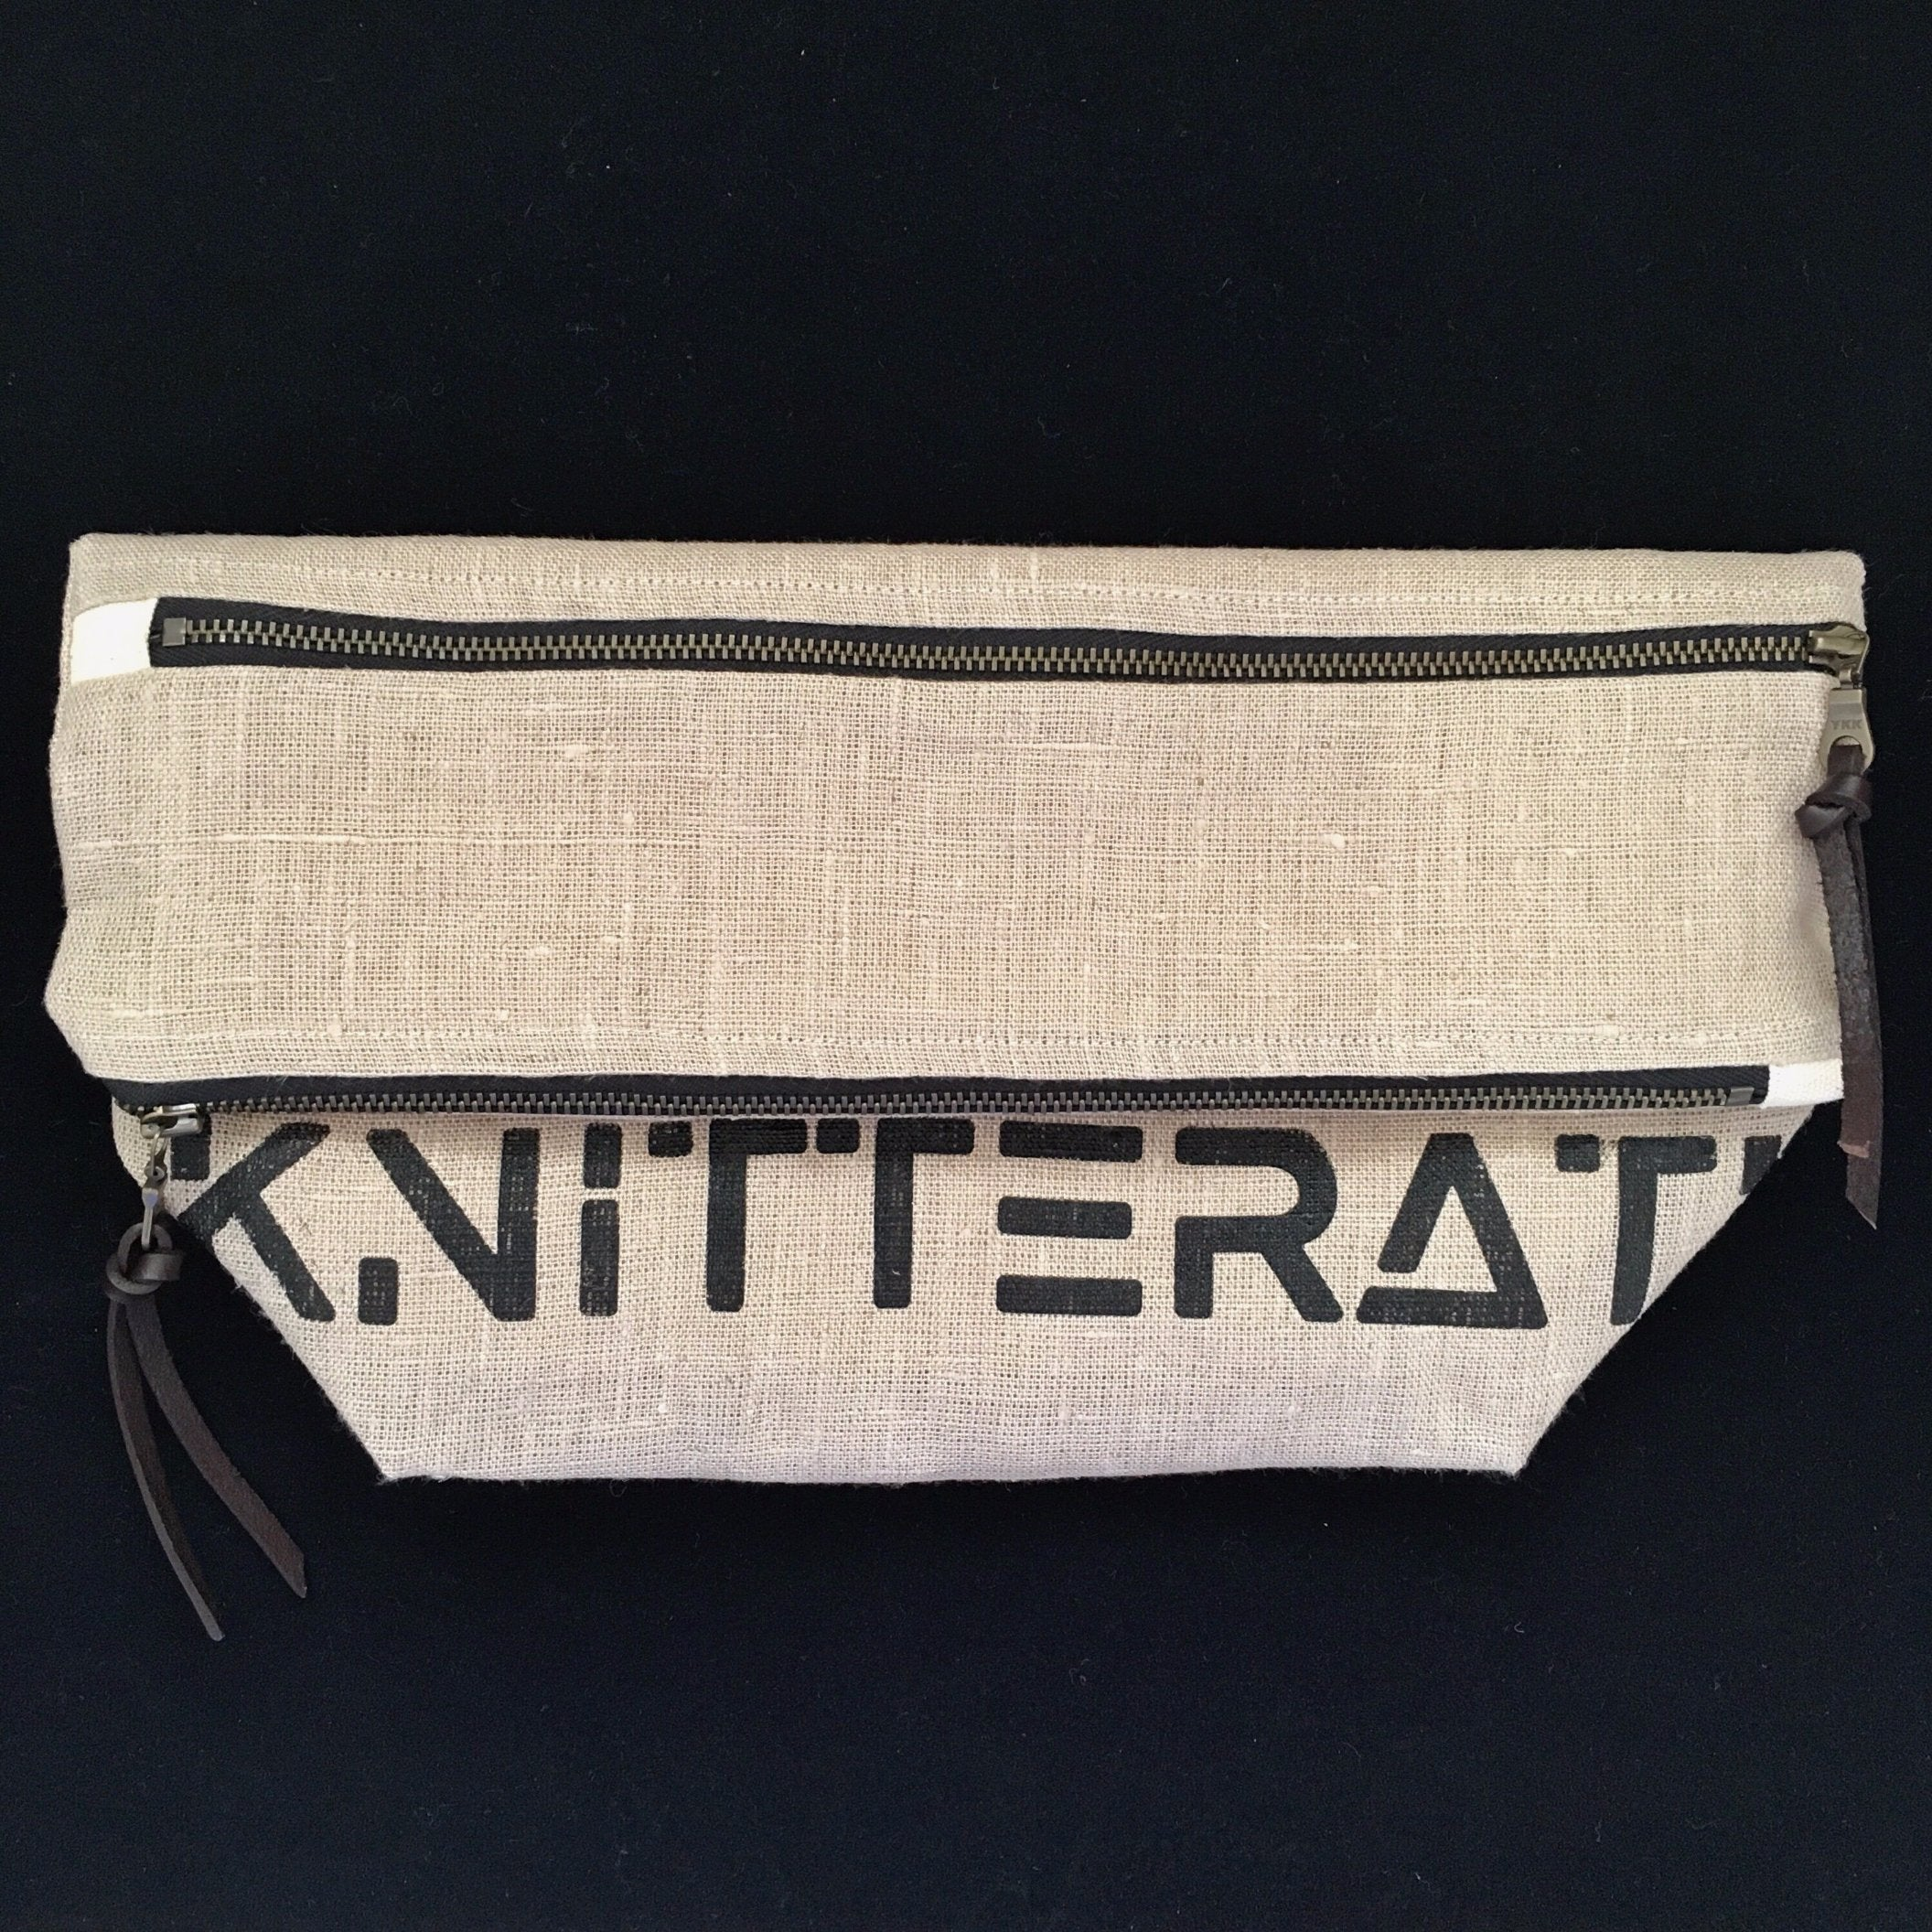 knitterati project bag / zipper bag / yarn bag / knitting / pearadise island / knitterati clutch / screen print / screen printed knitterati bag